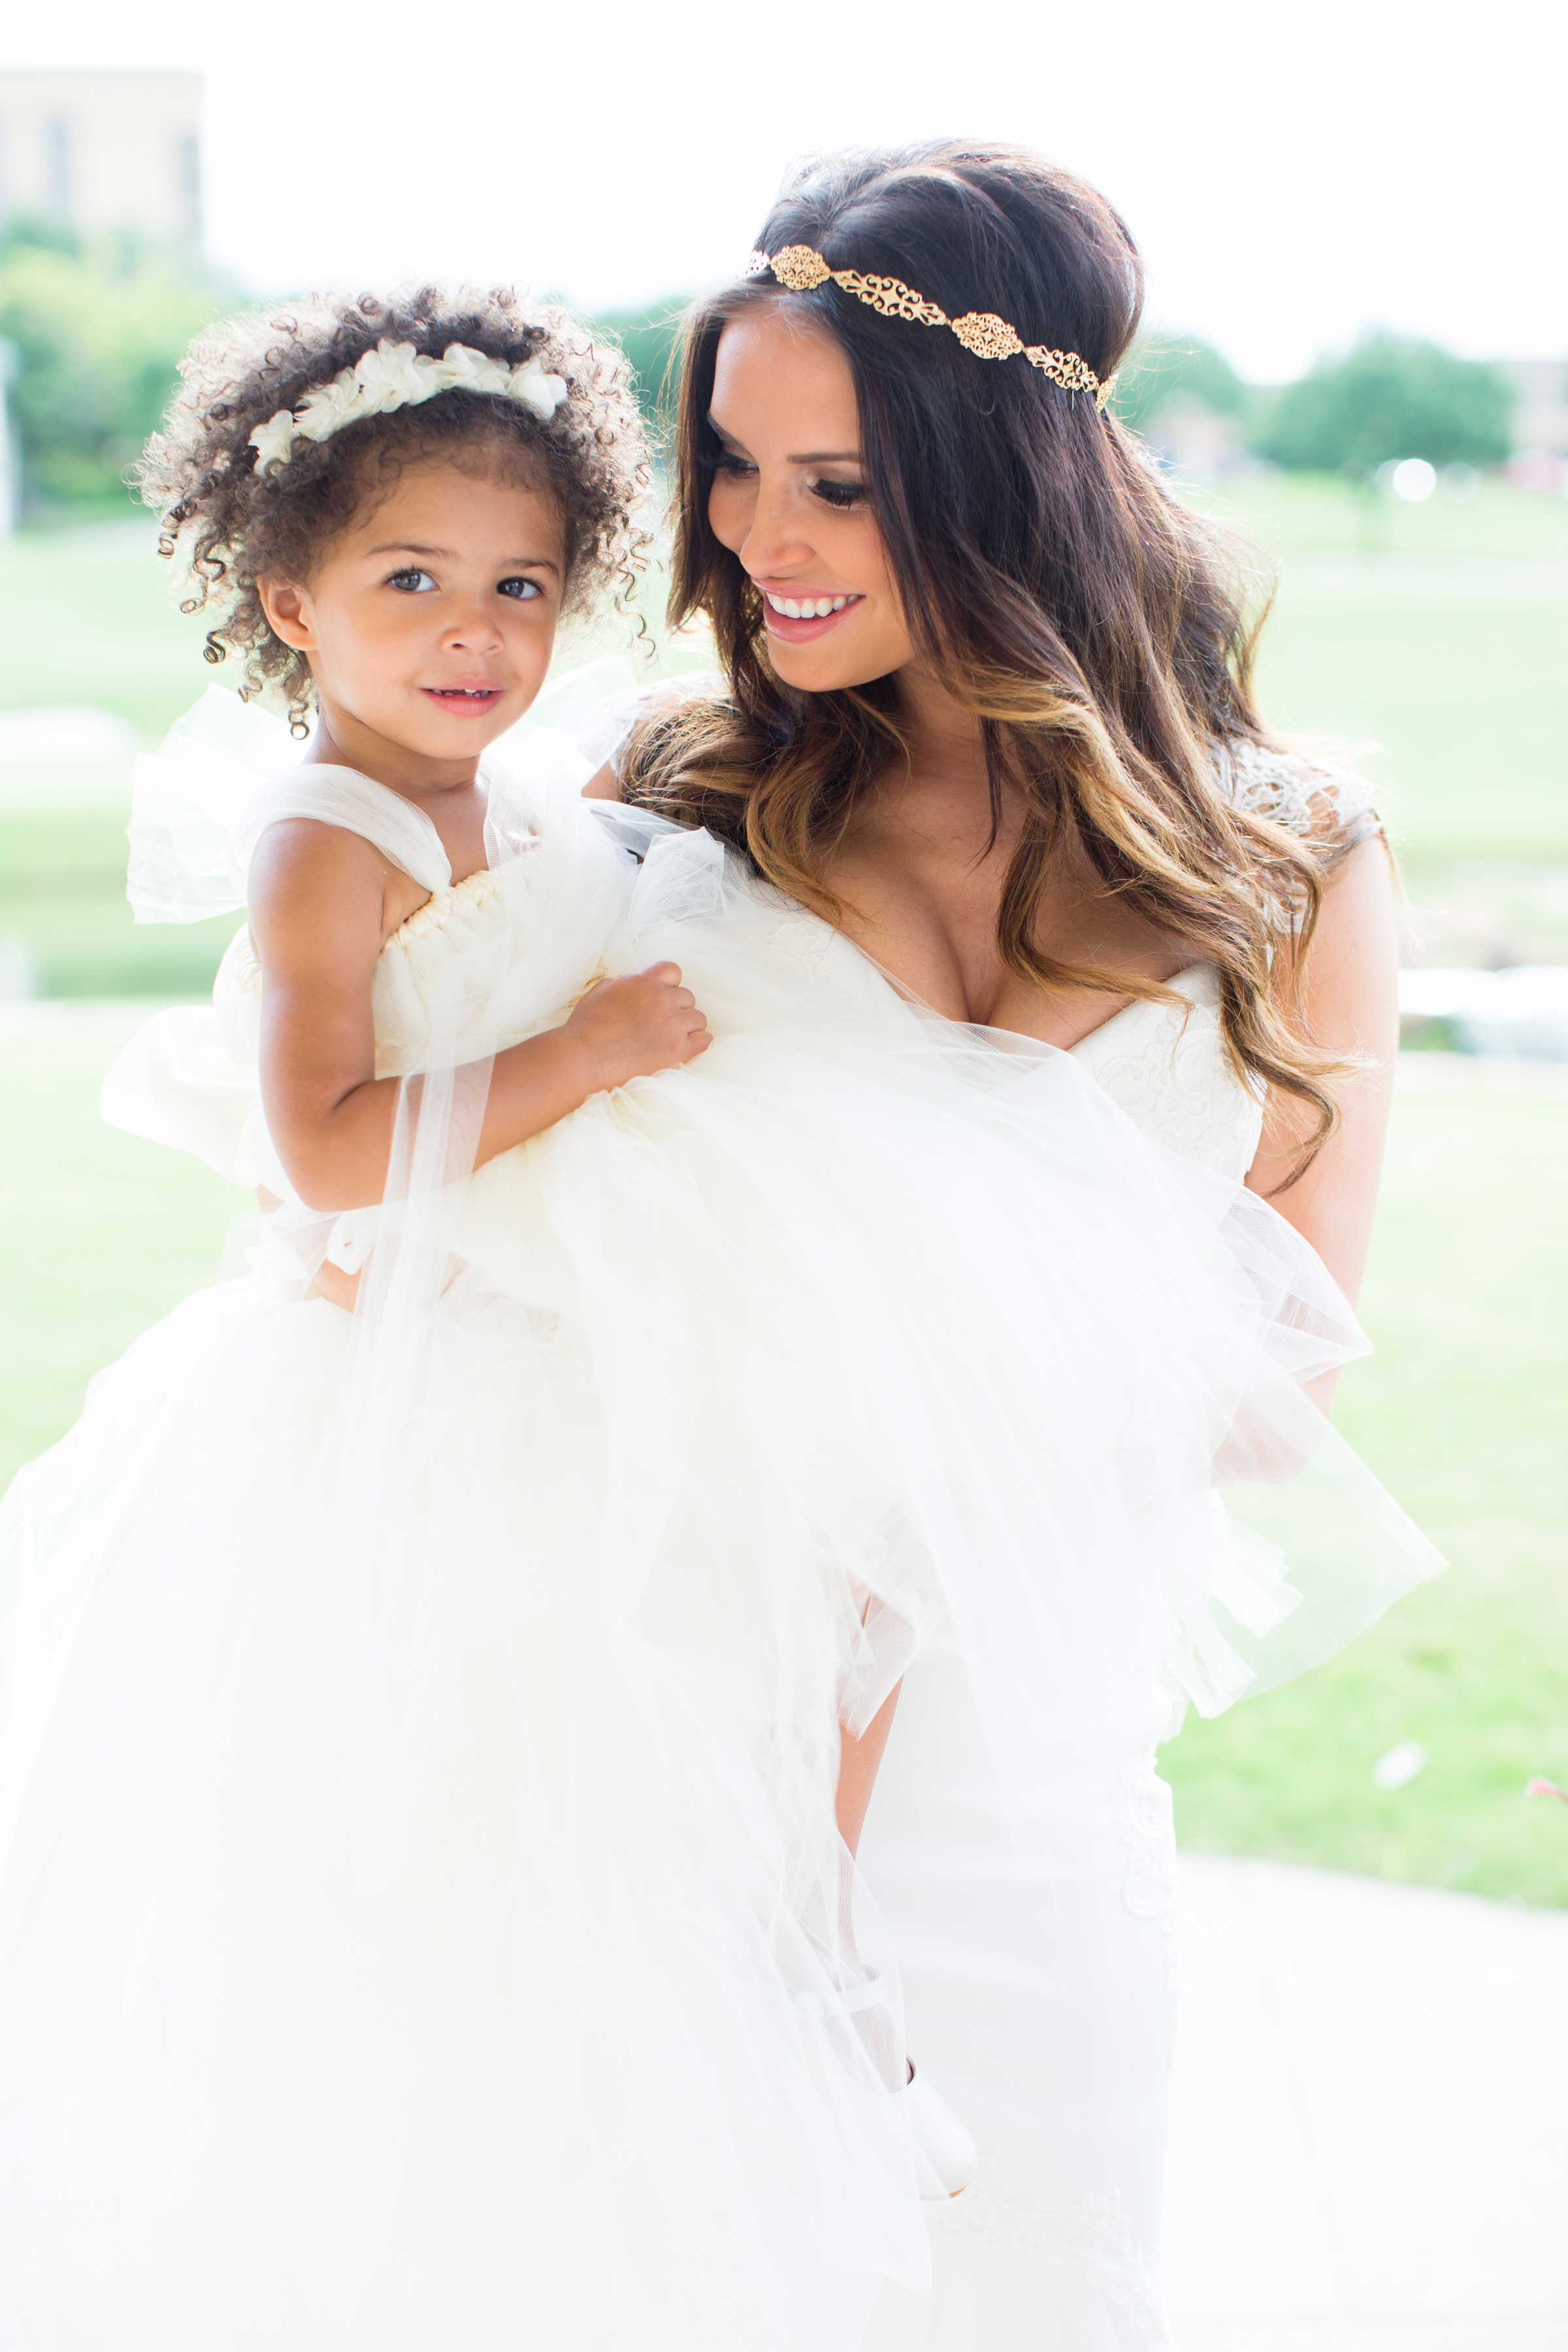 Heidi Mueller with her and DeMarco Murray's daughter on wedding day